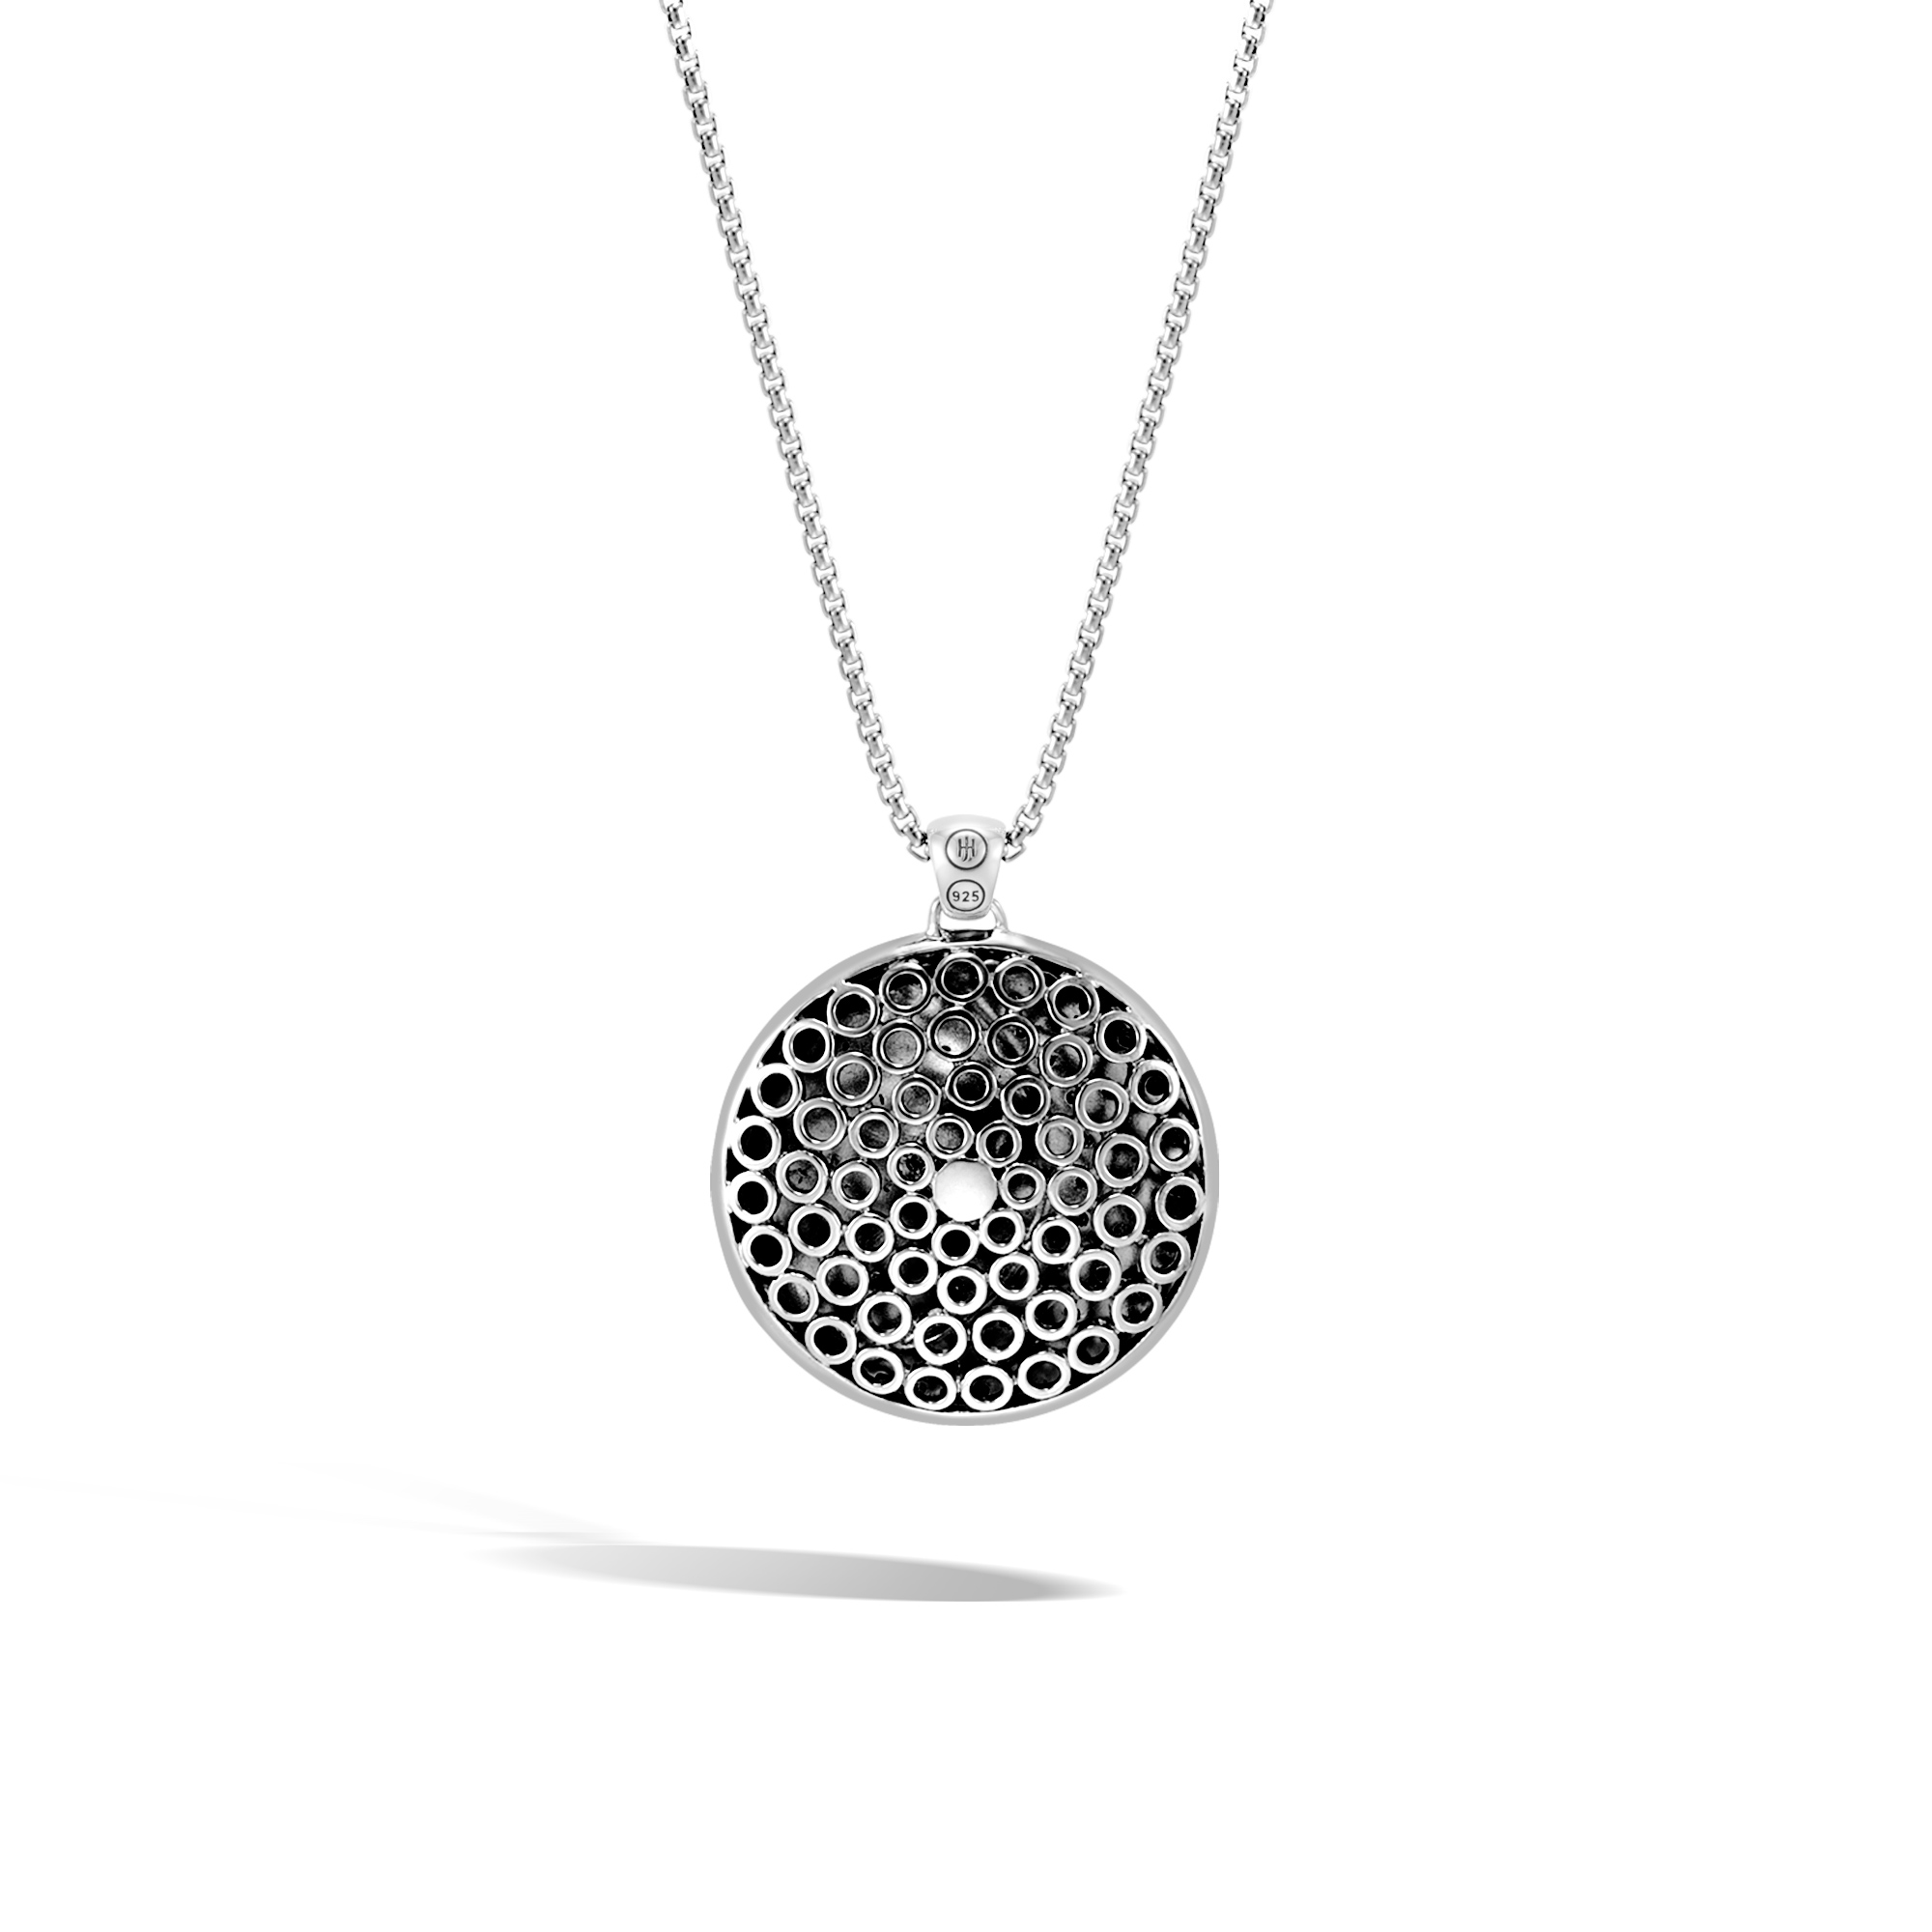 Dot Moon Phase Pendant Necklace in Hammered Silver, , large